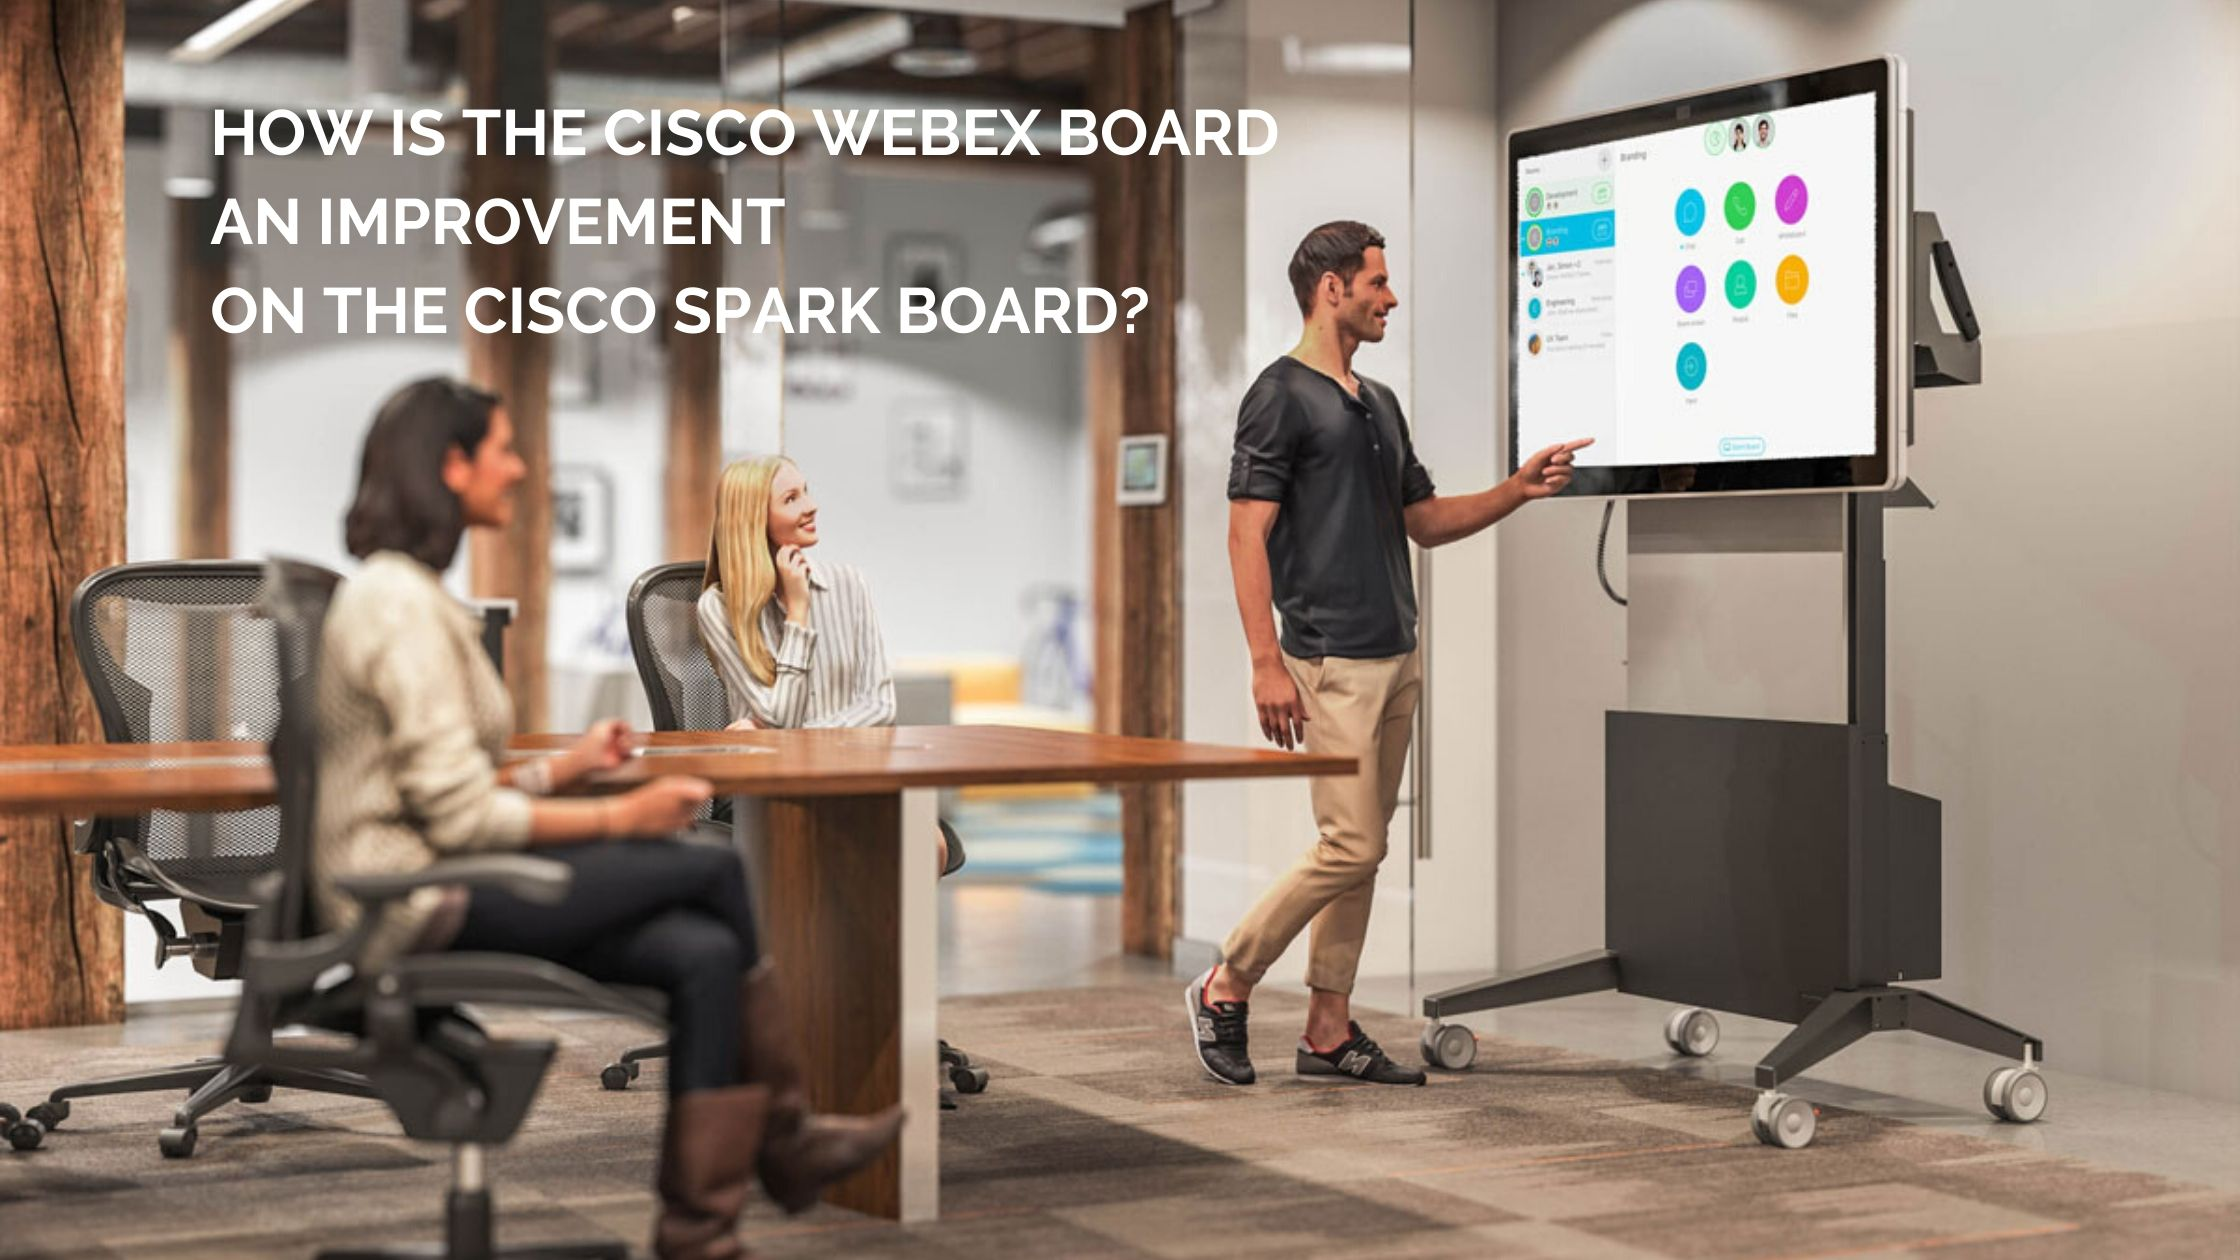 How is the Cisco Webex Board an Improvement on the Cisco Spark Board?